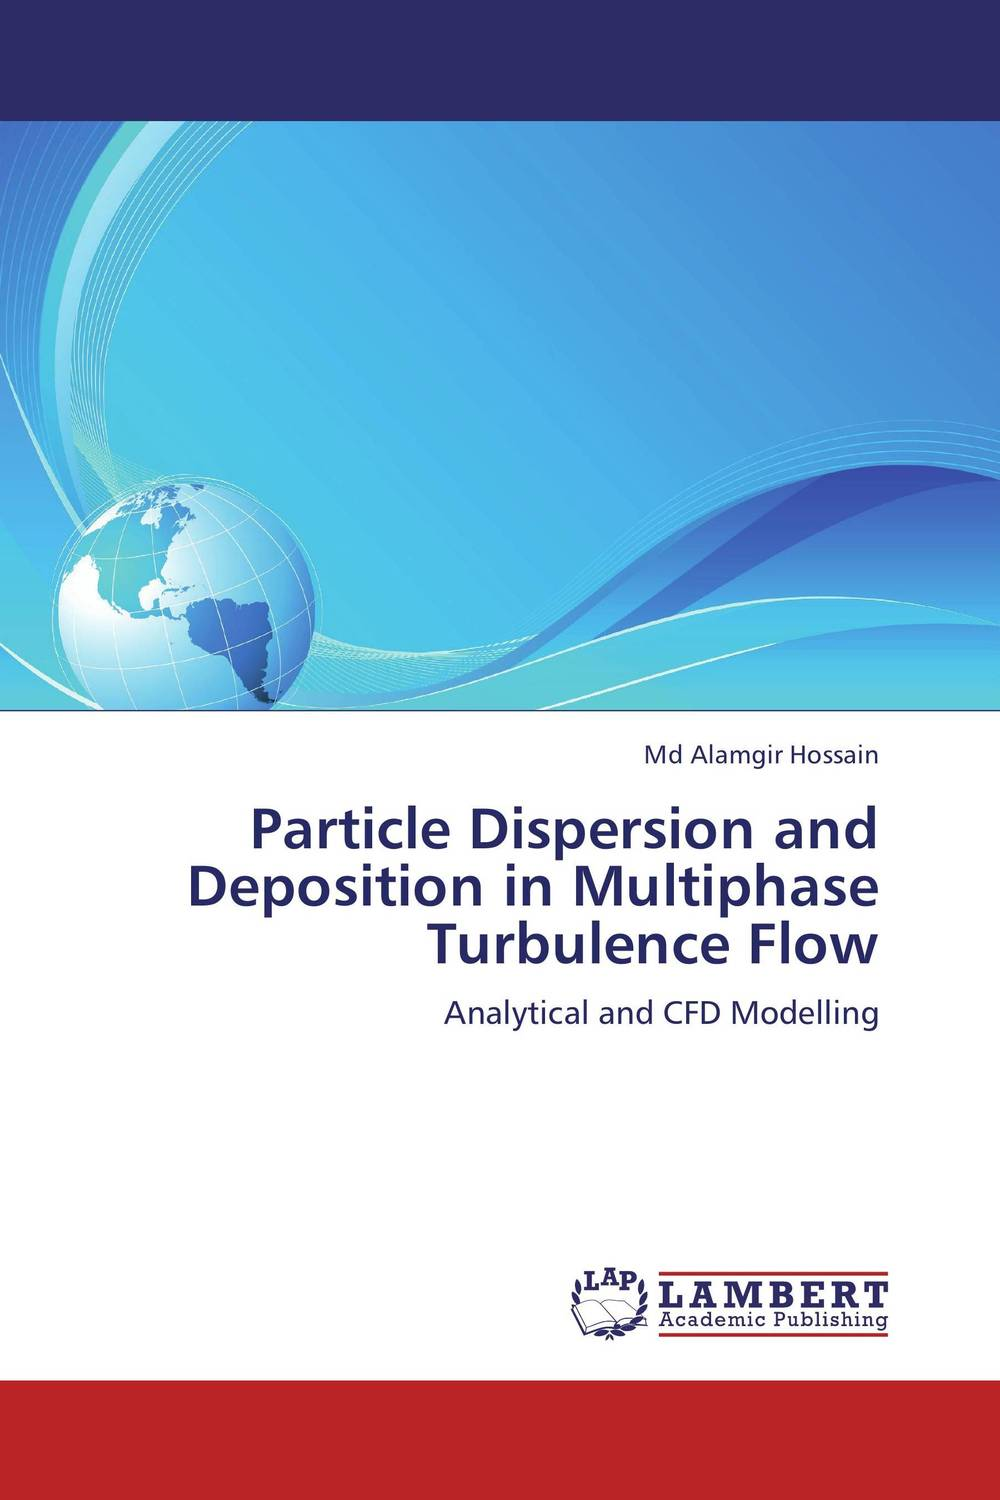 Particle Dispersion and Deposition in Multiphase Turbulence Flow turbulent jet flames from modelling to simulations